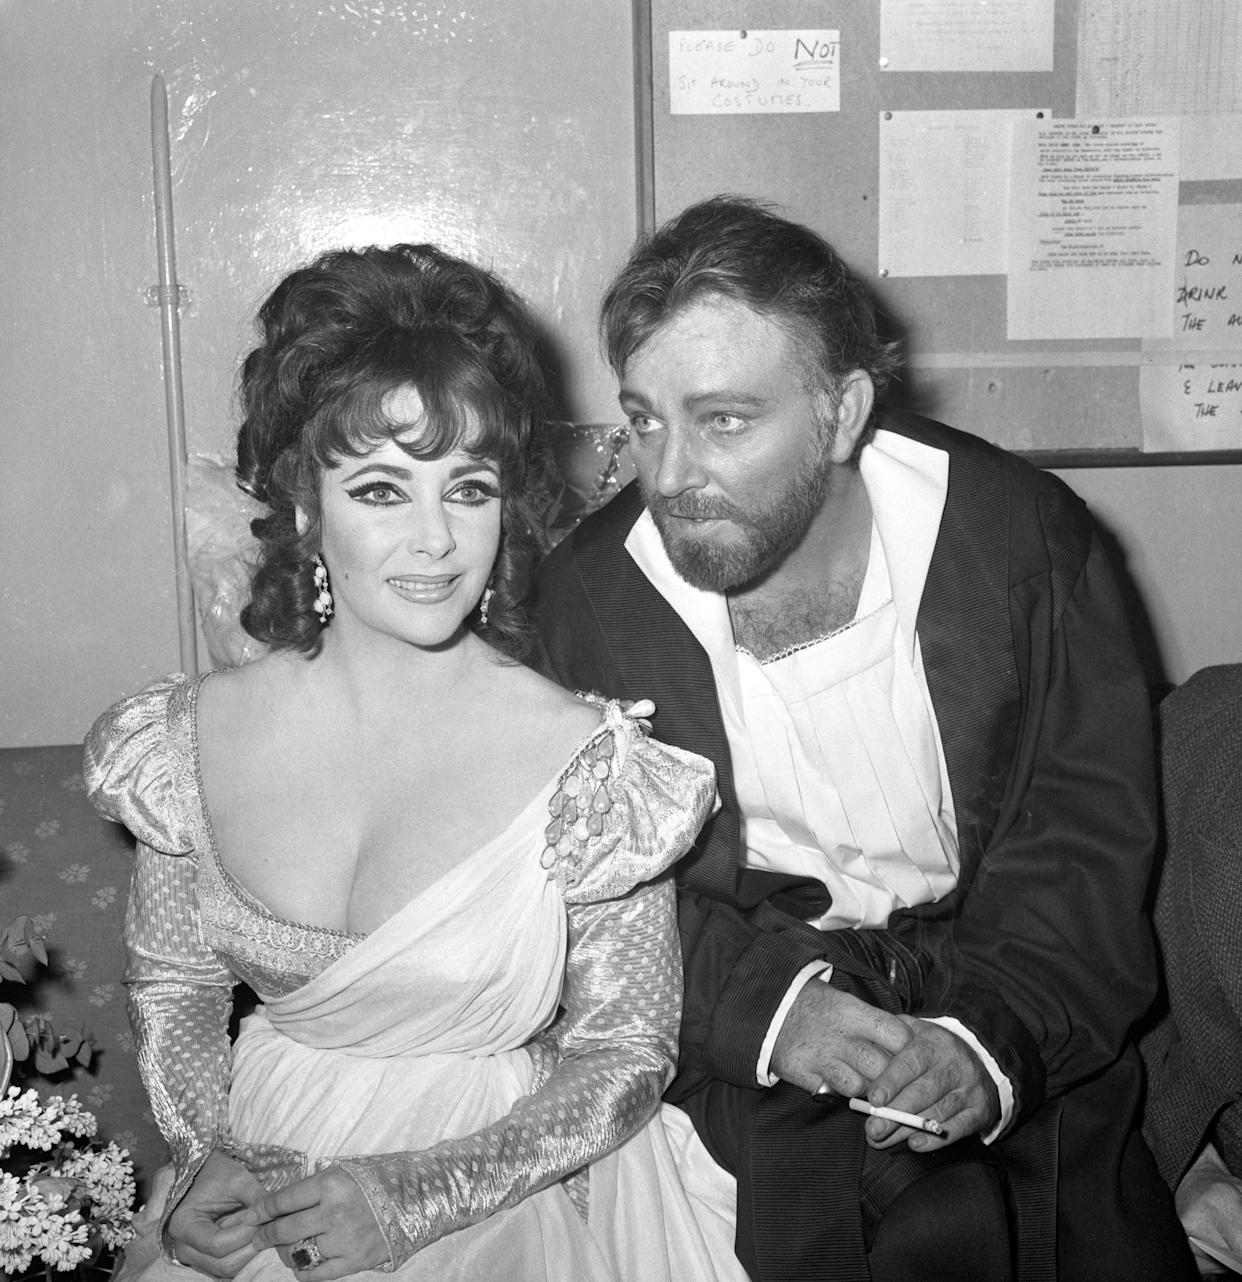 Elizabeth Taylor and Richard Burton after appearing in the first night of the Oxford University Dramatic Society production of Marlowe's Dr Faustus at the Playhouse Theatre. Mr Burton played the title role and wife played the non-speaking part of Helen of Troy. When the play ended last night, the cast took 15 curtain calls and enjoyed over nine minutes of applause.